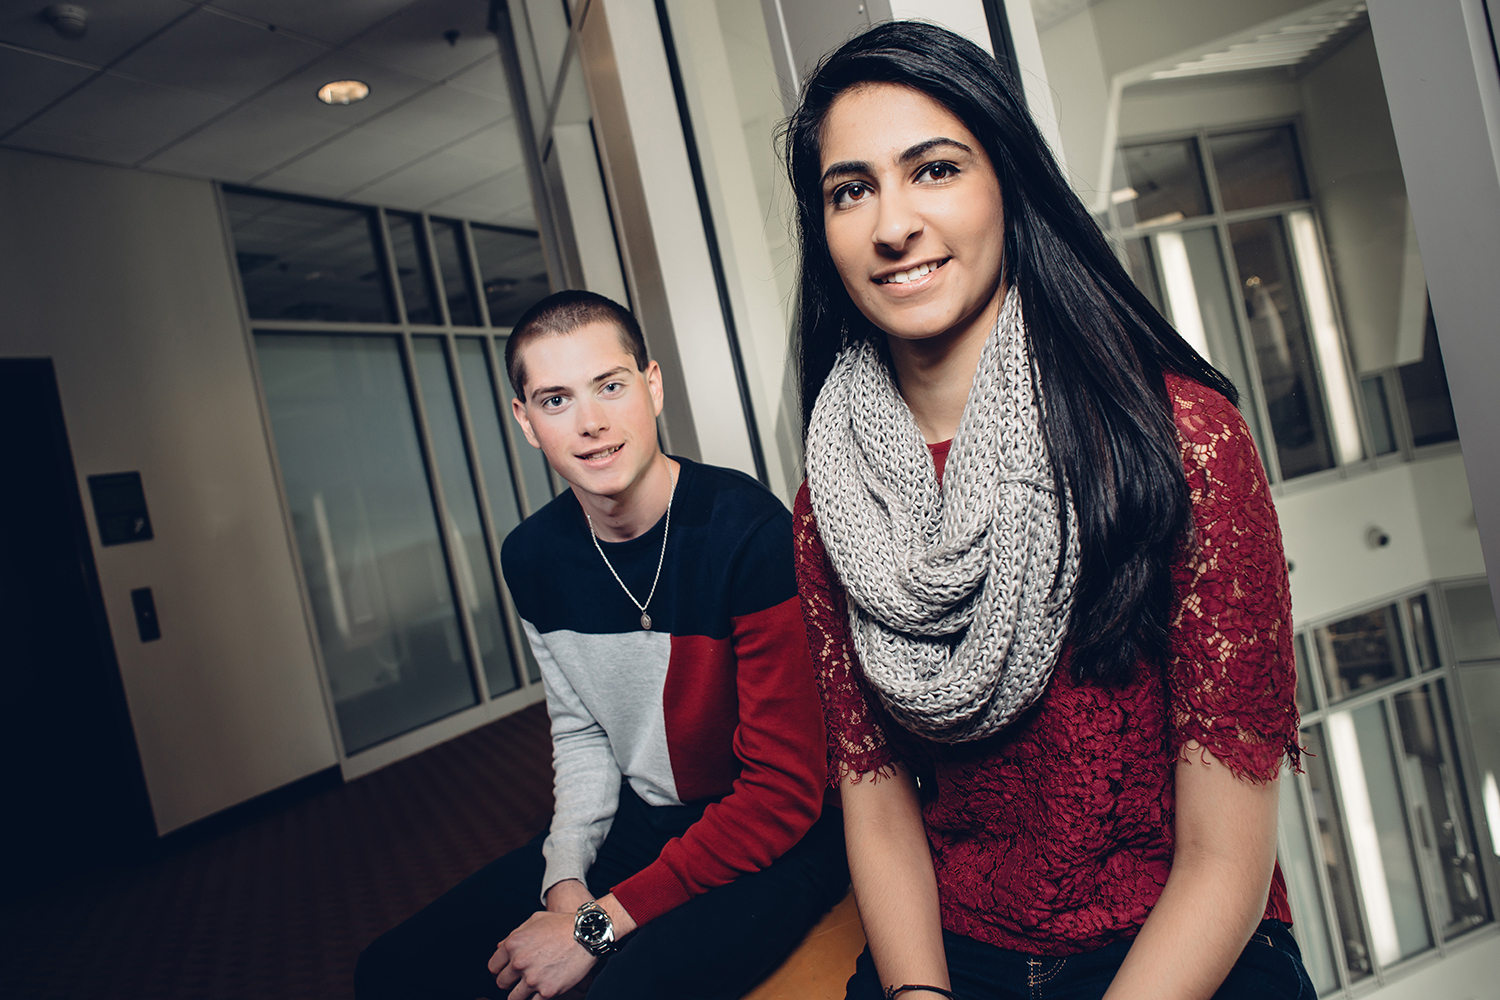 Jeffrey Noonan, left, and Kavisha Thakkar have been selected as two of UConn's Leadership Legacy scholars, an honor bestowed on the University's most exceptional students, who have demonstrated leadership, personal accomplishment and academic excellence. (Nathan Oldham/UConn photo)